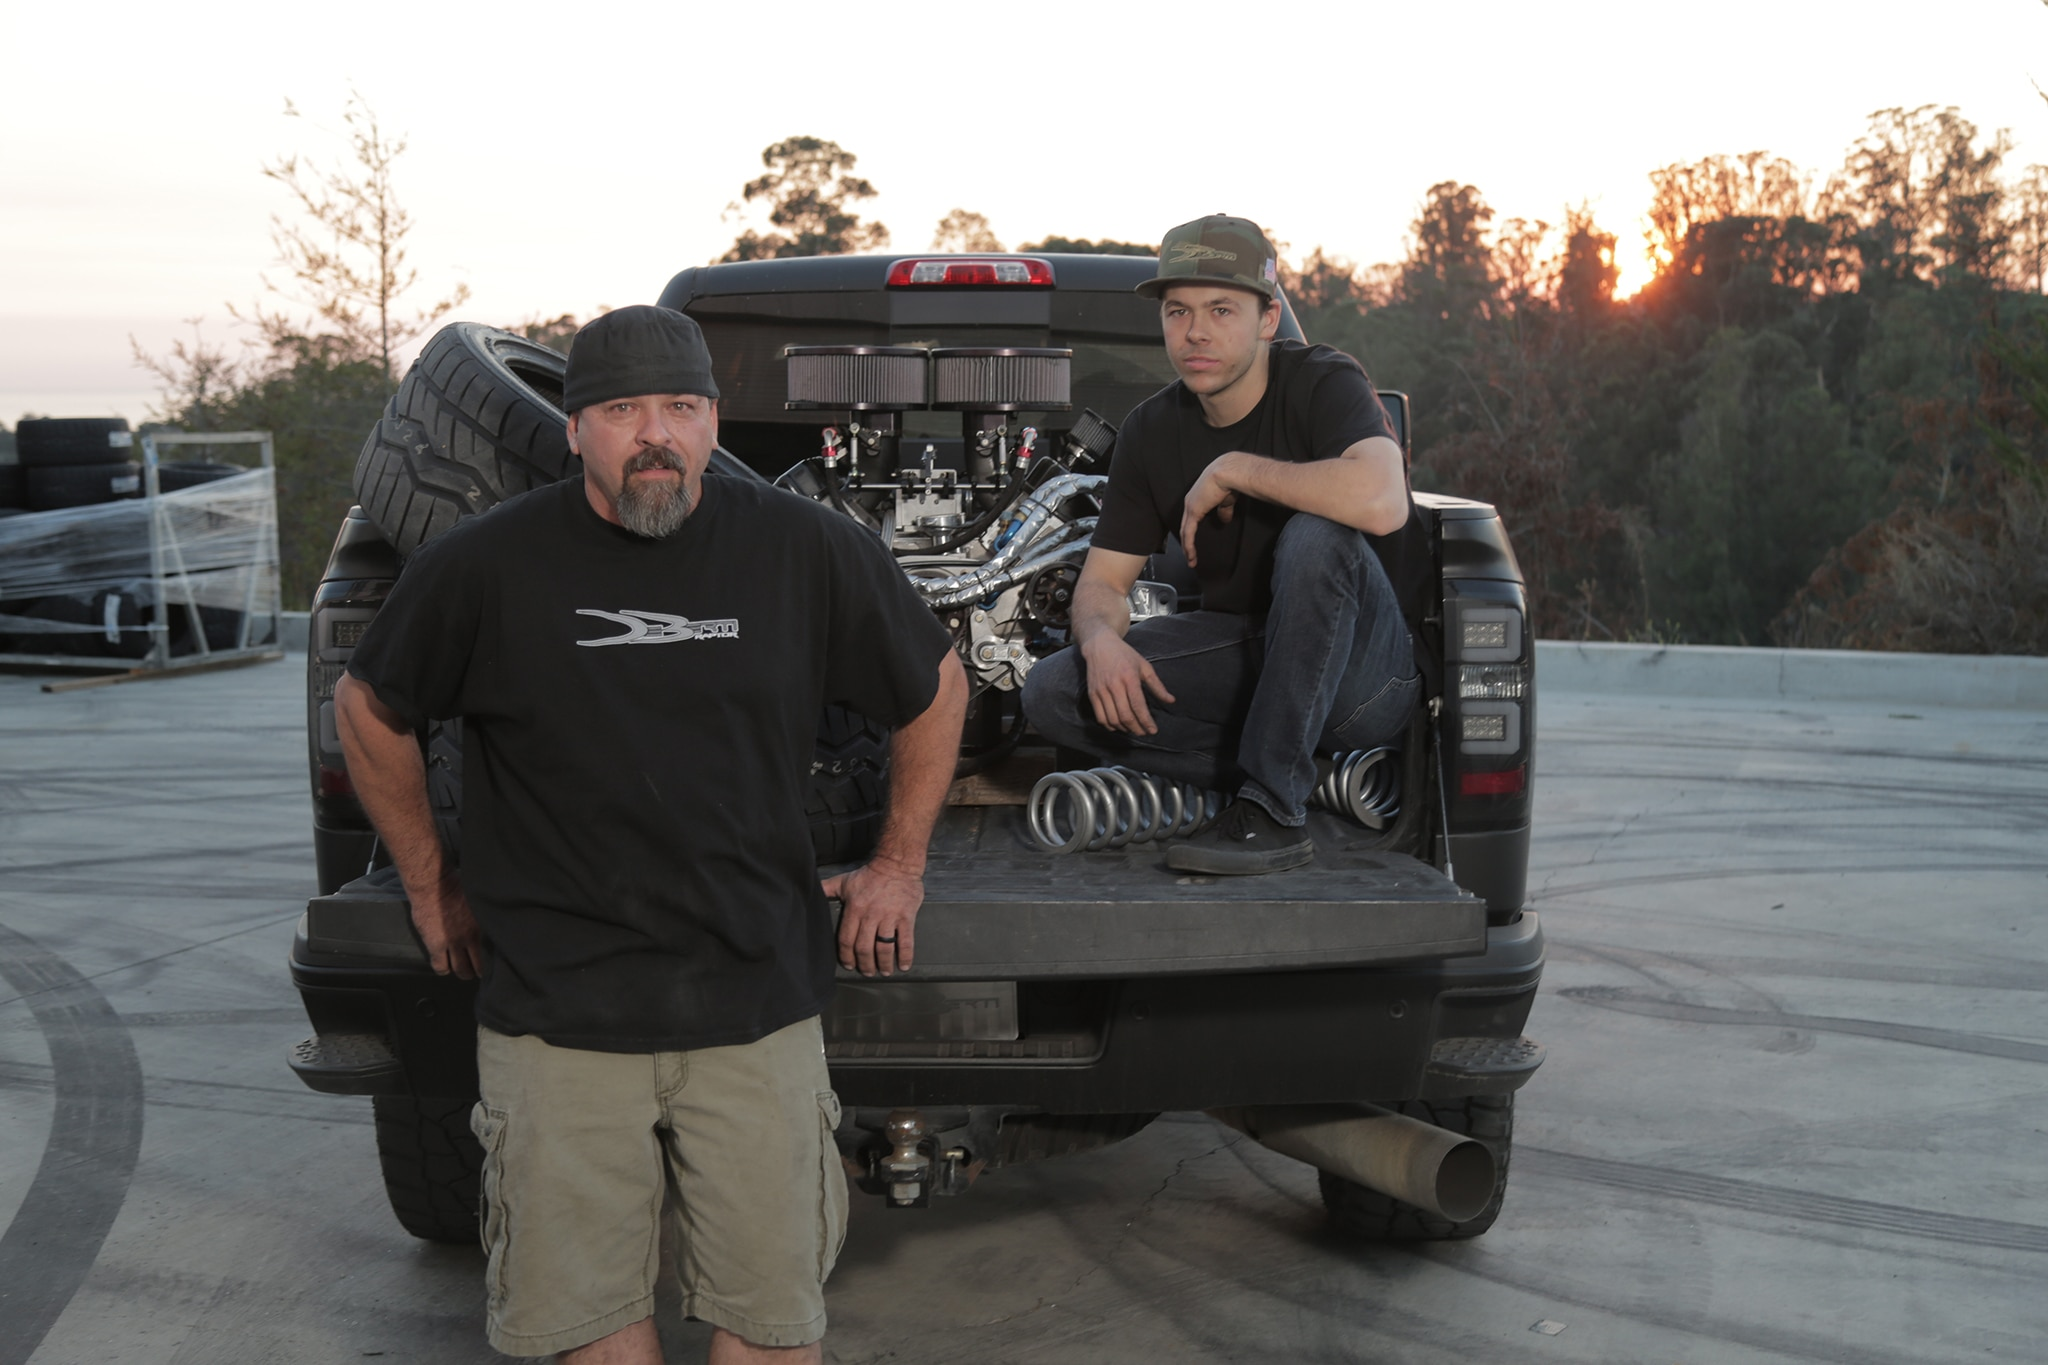 AllNew Twin Turbos Series To Premiere On Discovery Automobile - New car show on discovery channel